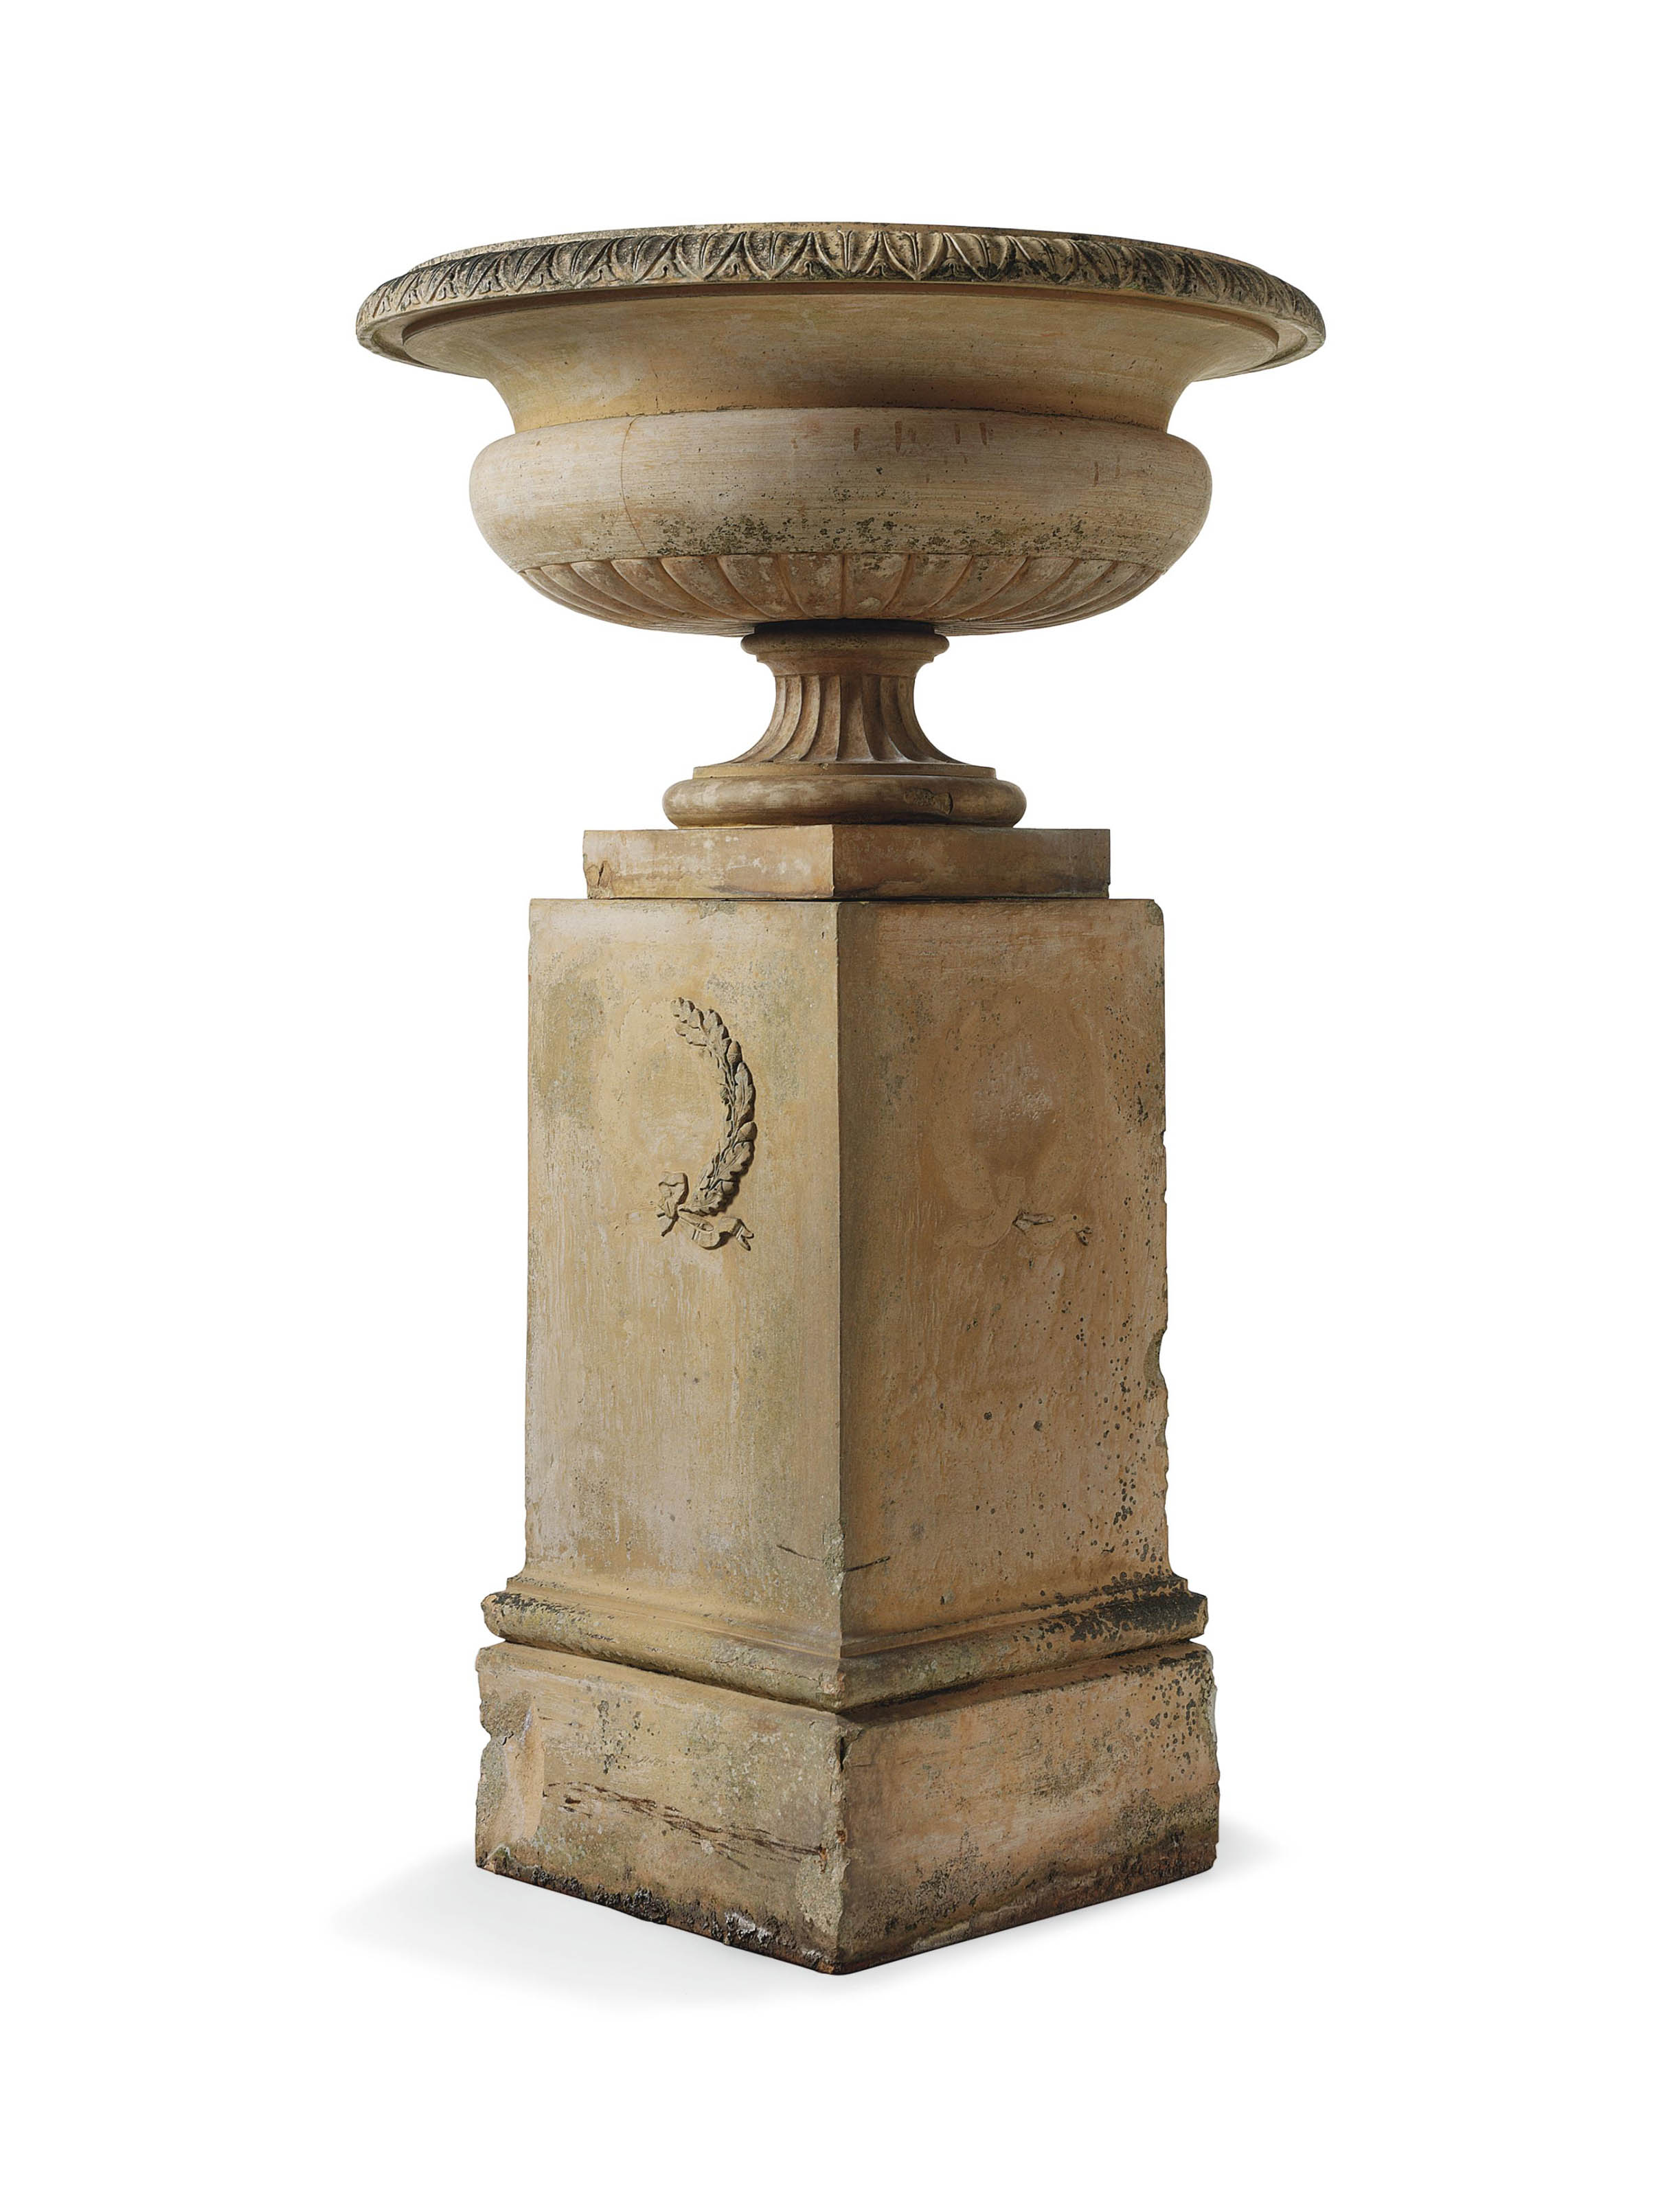 A VICTORIAN TERRACOTTA URN ON PEDESTAL